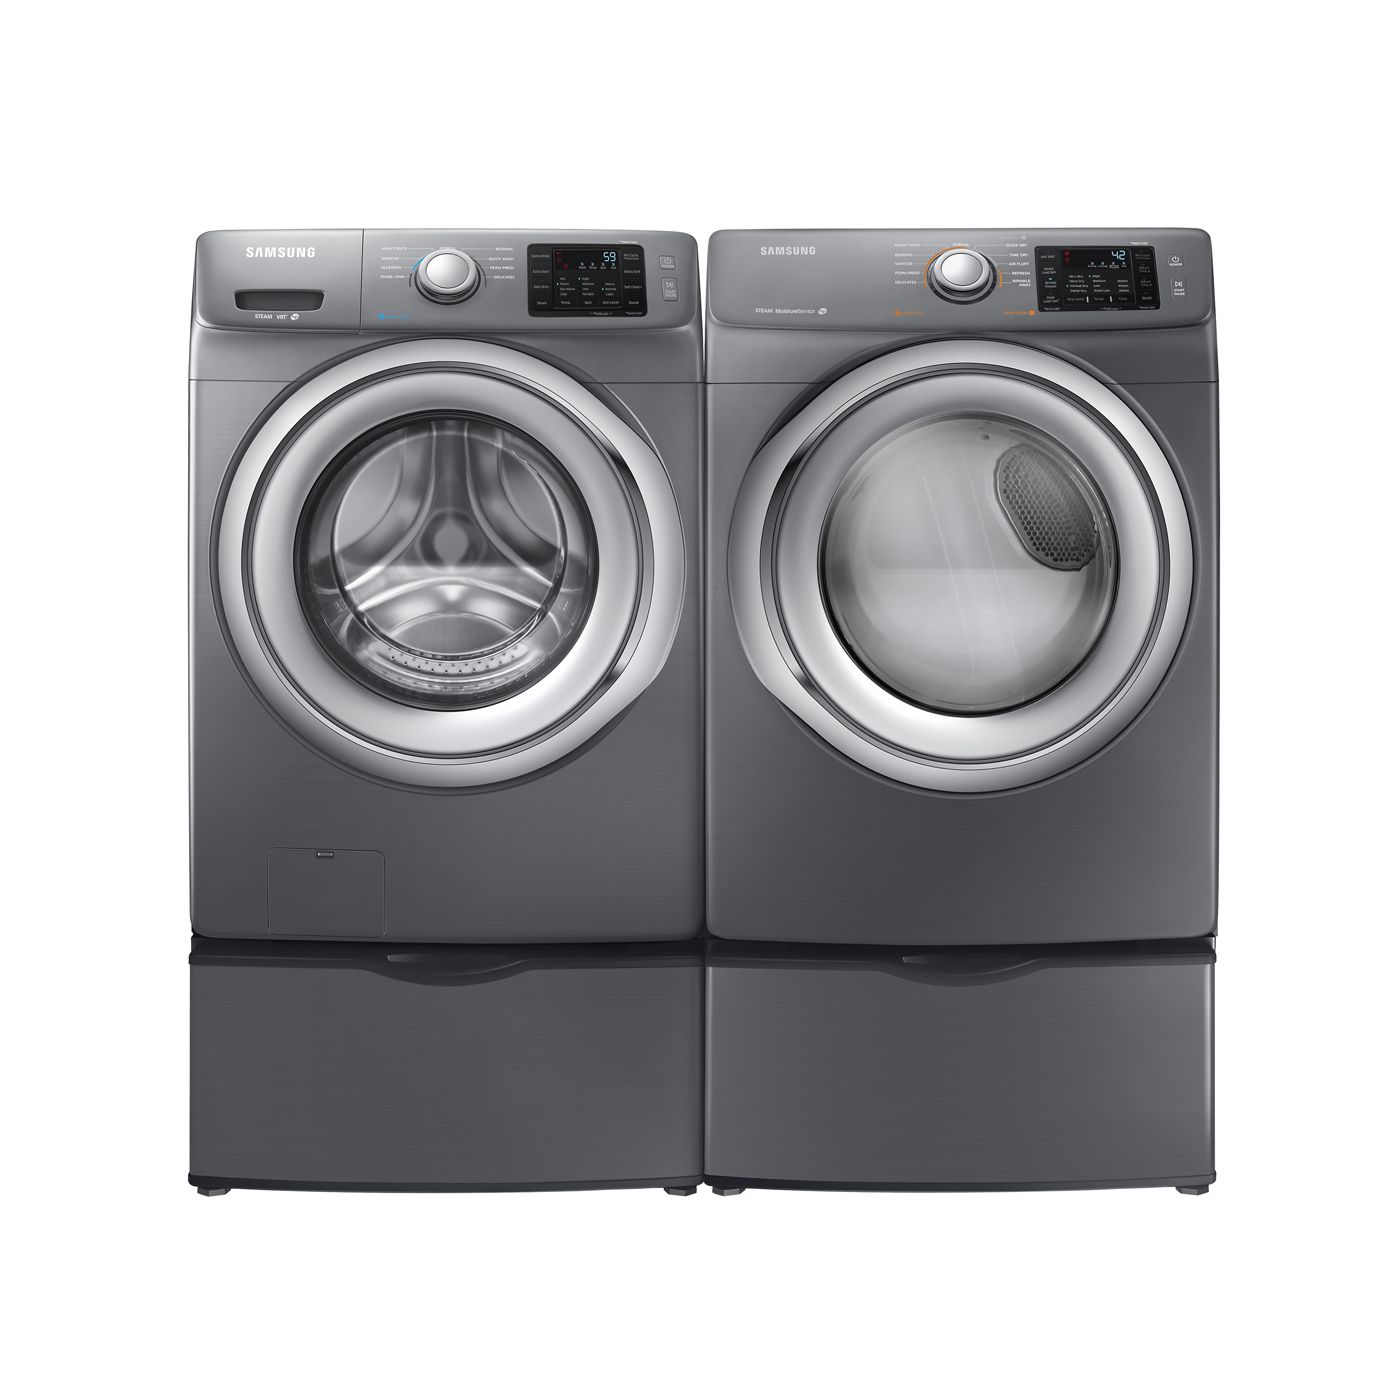 Shop Samsung High Efficiency Front Load Washer U0026 Electric Dryer Set At  Loweu0027s Canada. Find Our Selection Of Laundry Pairs At The Lowest Price  Guaranteed ...